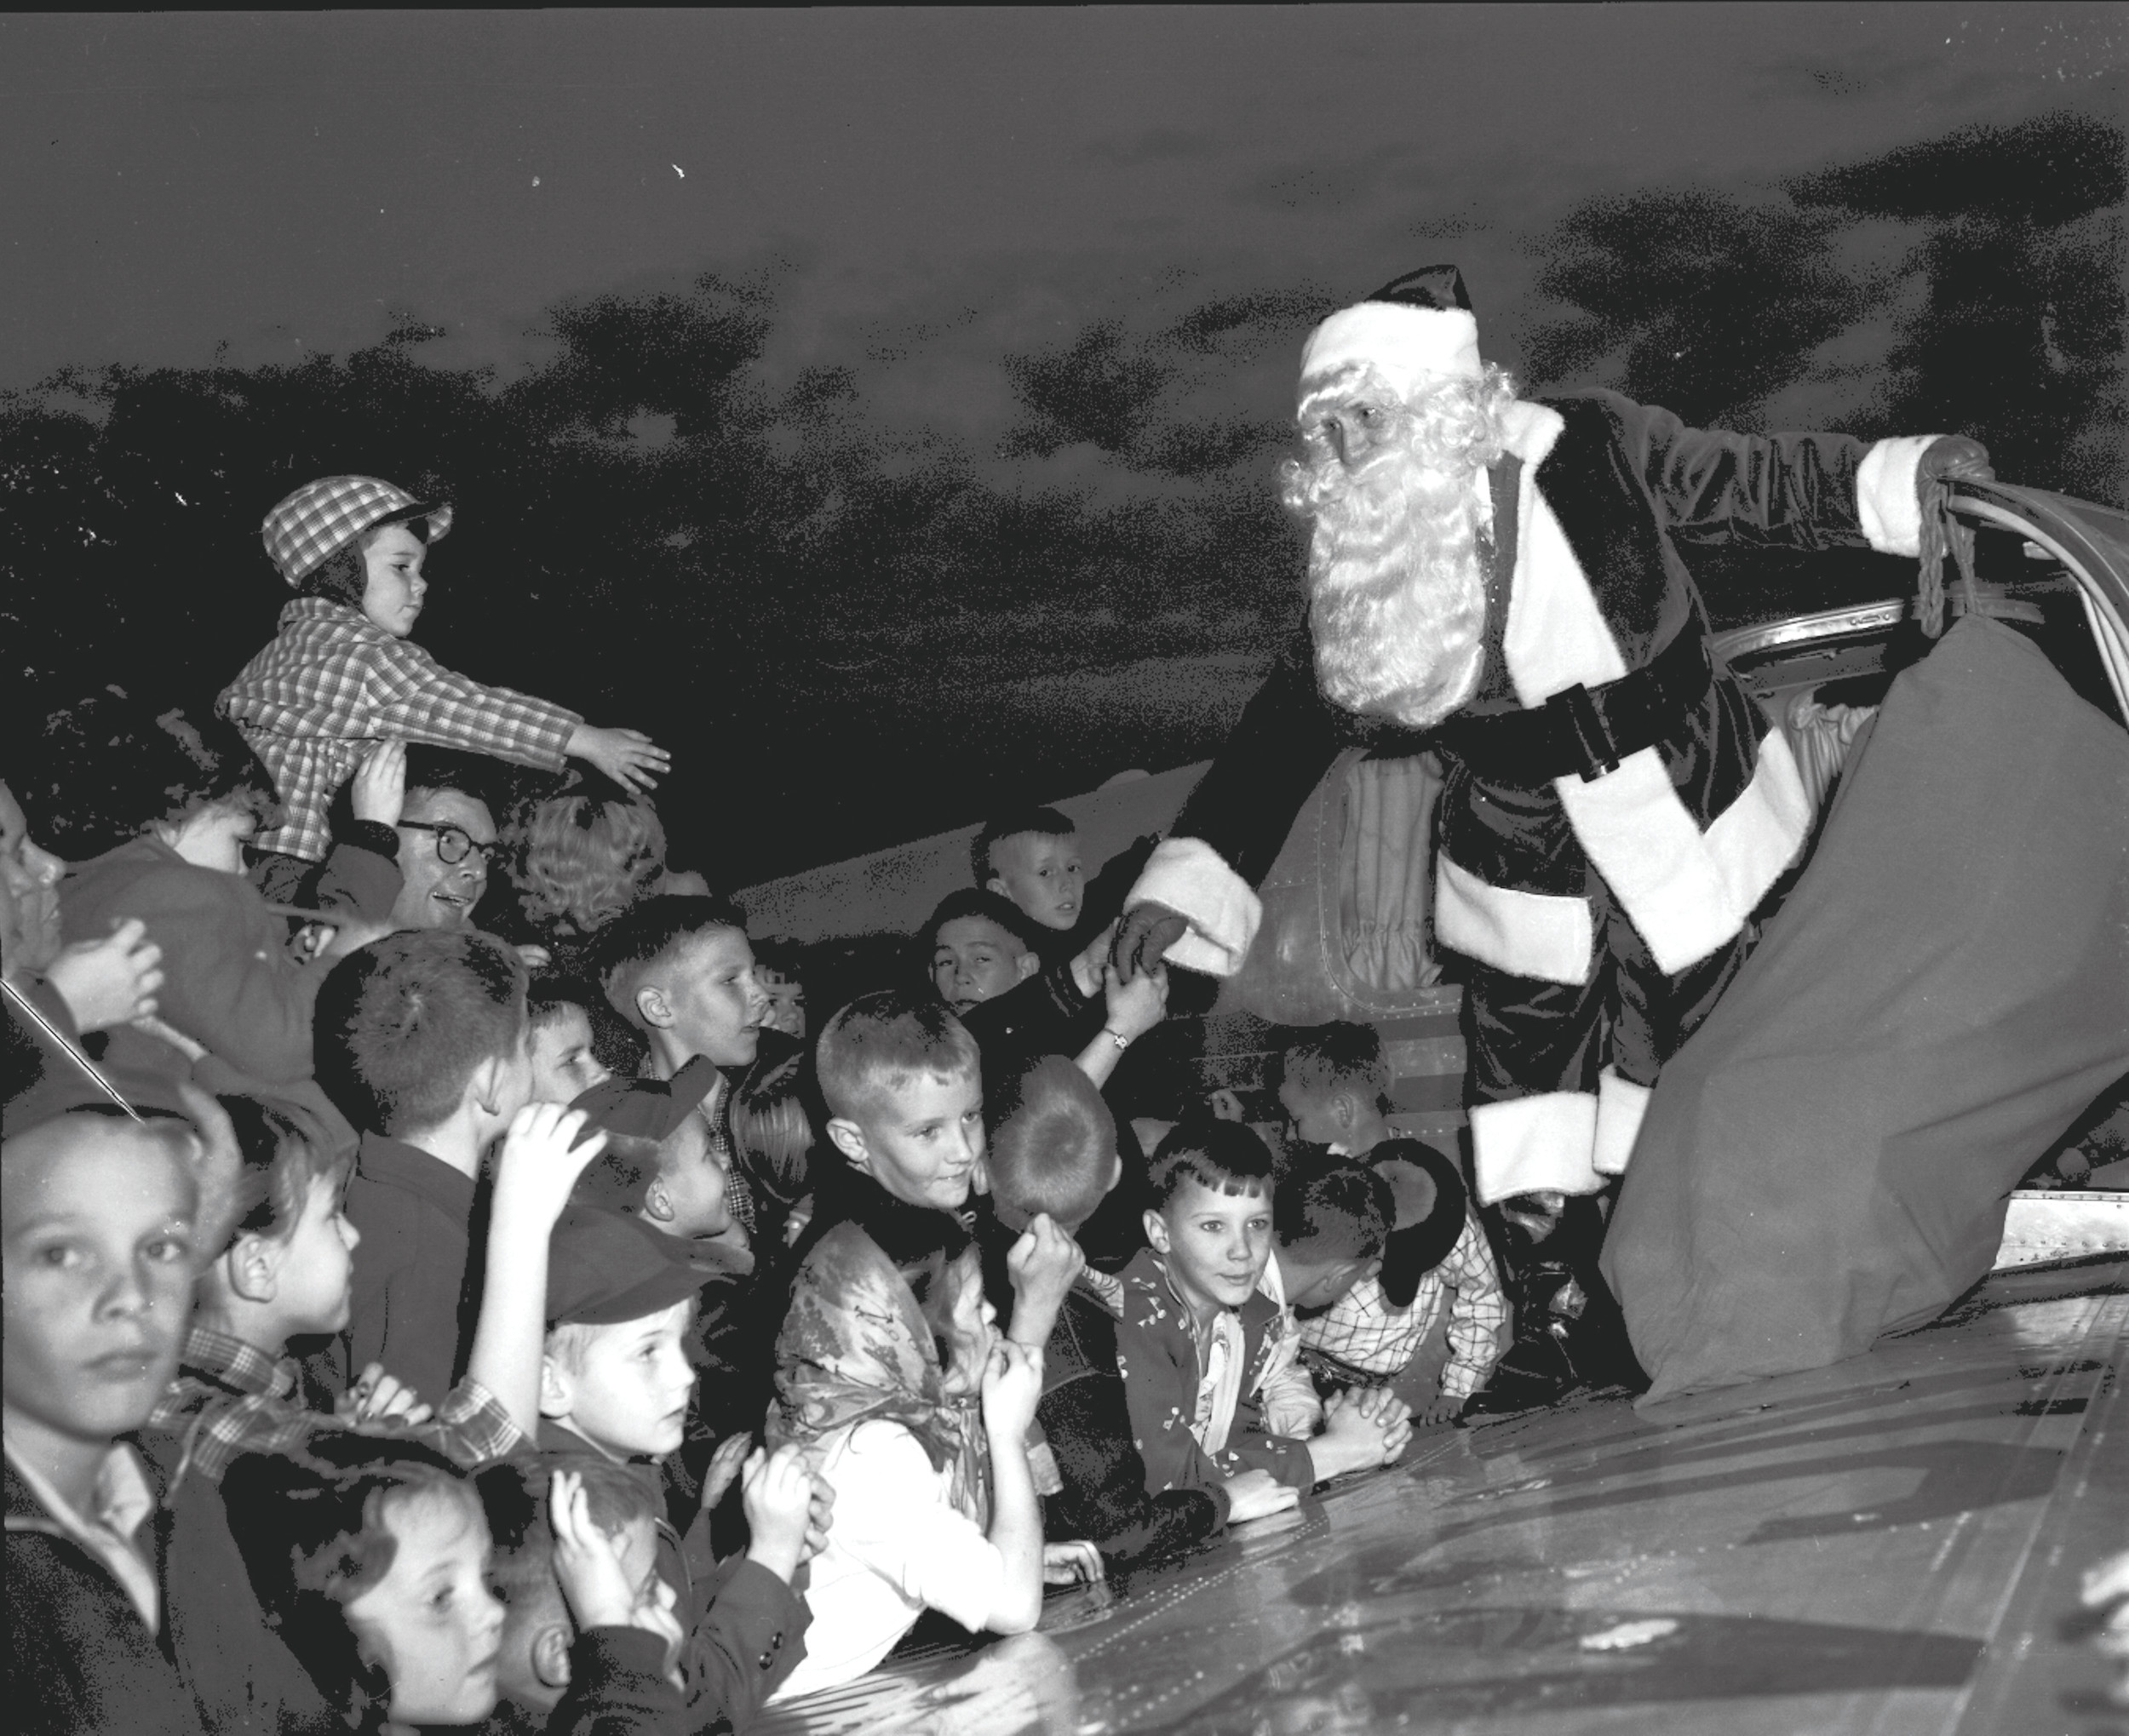 Santa was transported to Sumter in the 1950s in an airplane provided by the owner of Coca-Cola Co. to greet a crowd of children from the city at the local airport.